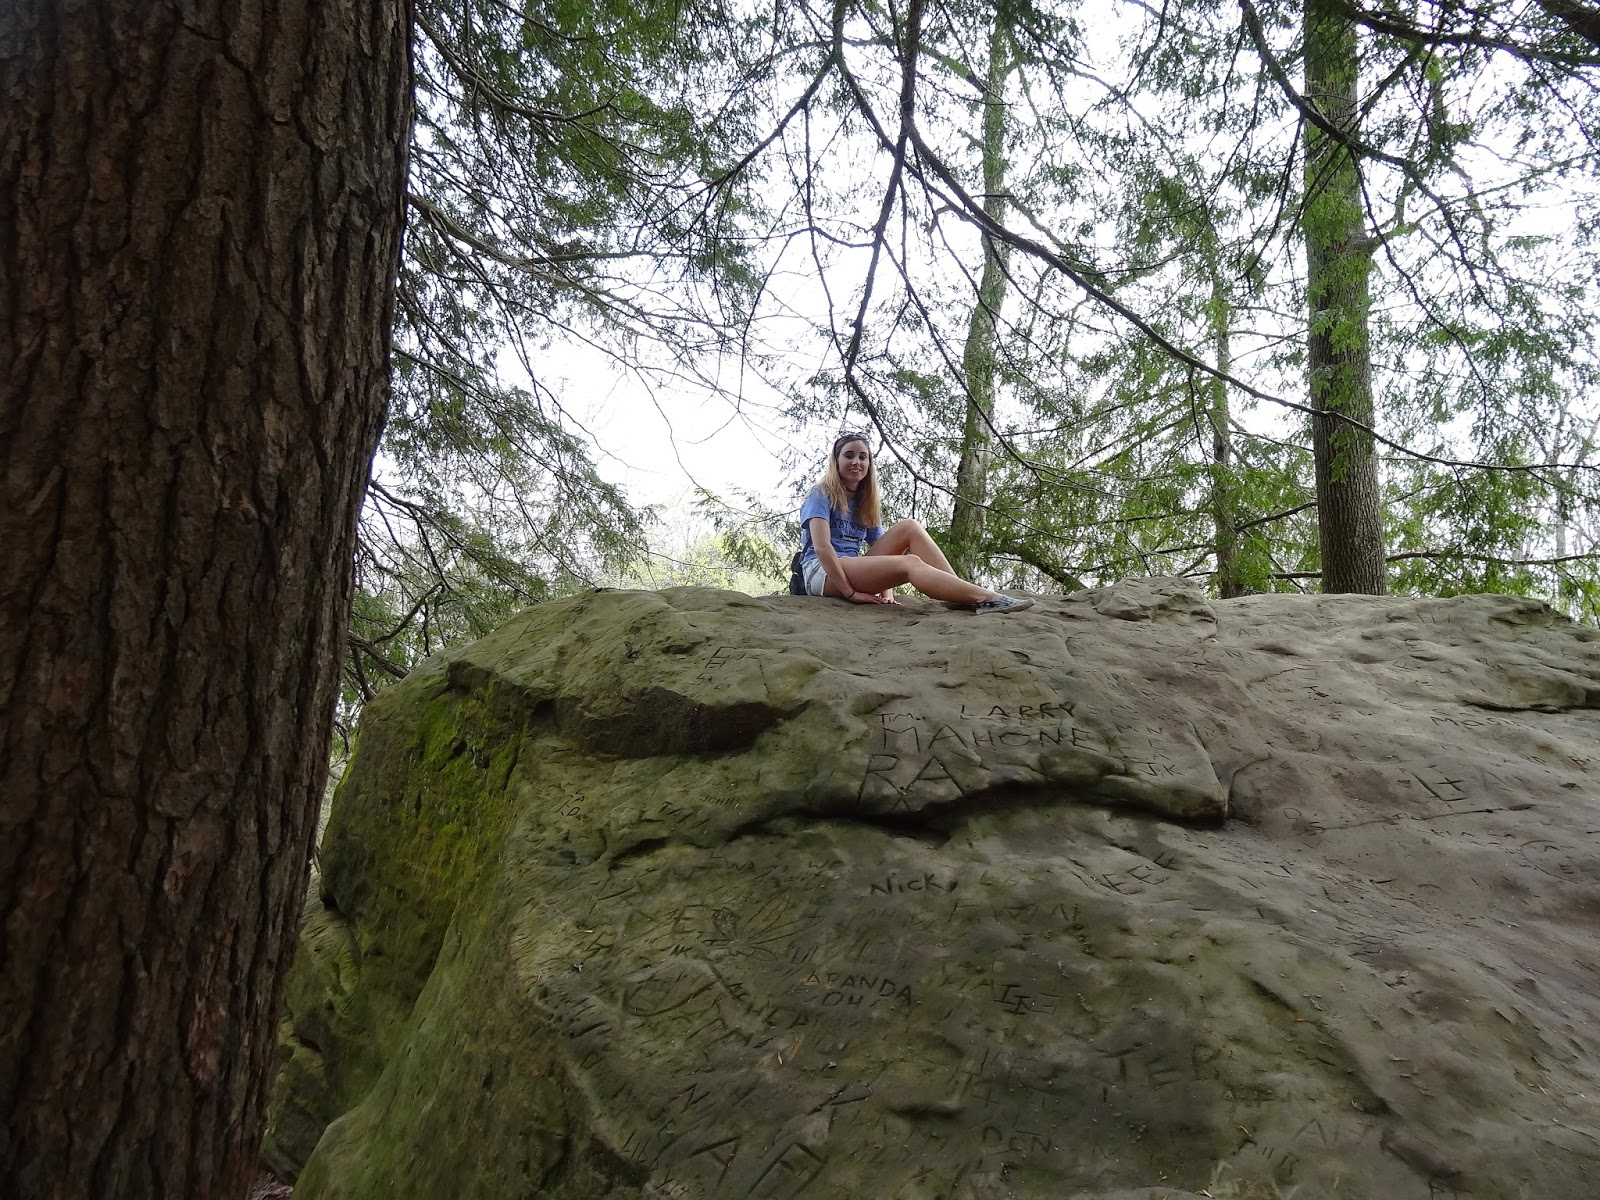 Me on a rock